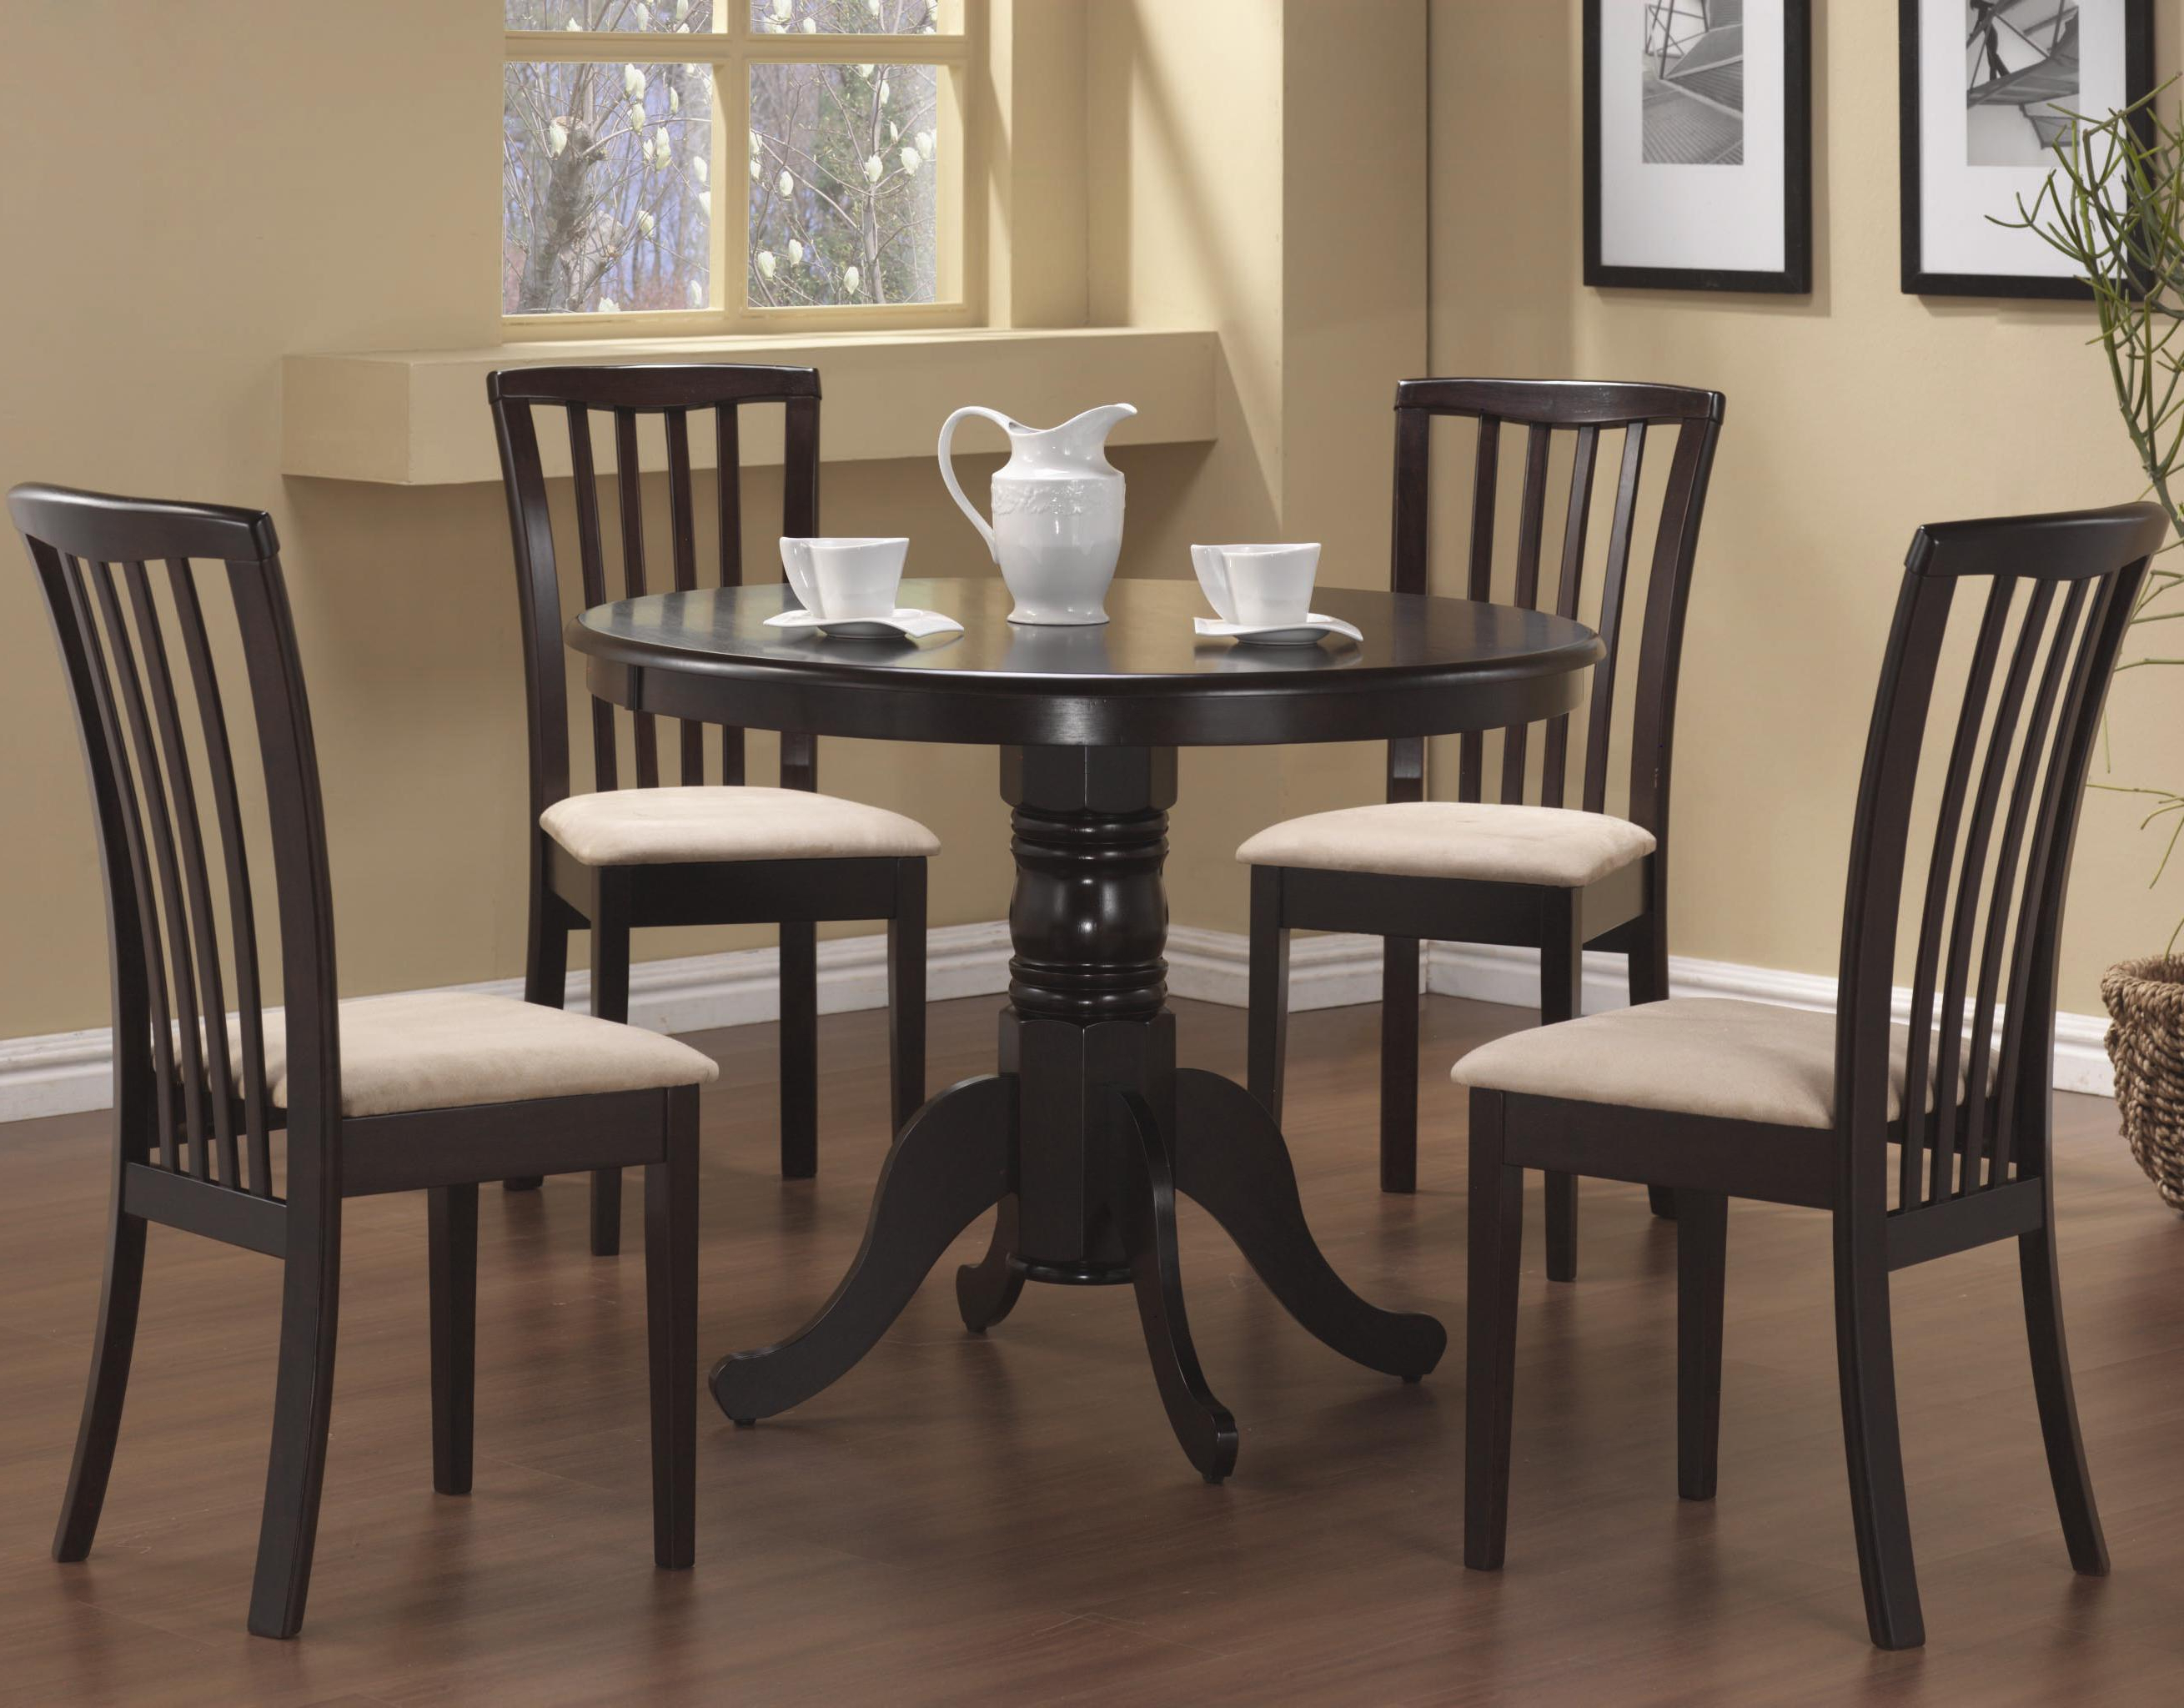 Preferred Santa Clara Furniture Store, San Jose Furniture Store, Sunnyvale For Anette 3 Piece Counter Height Dining Sets (View 5 of 25)